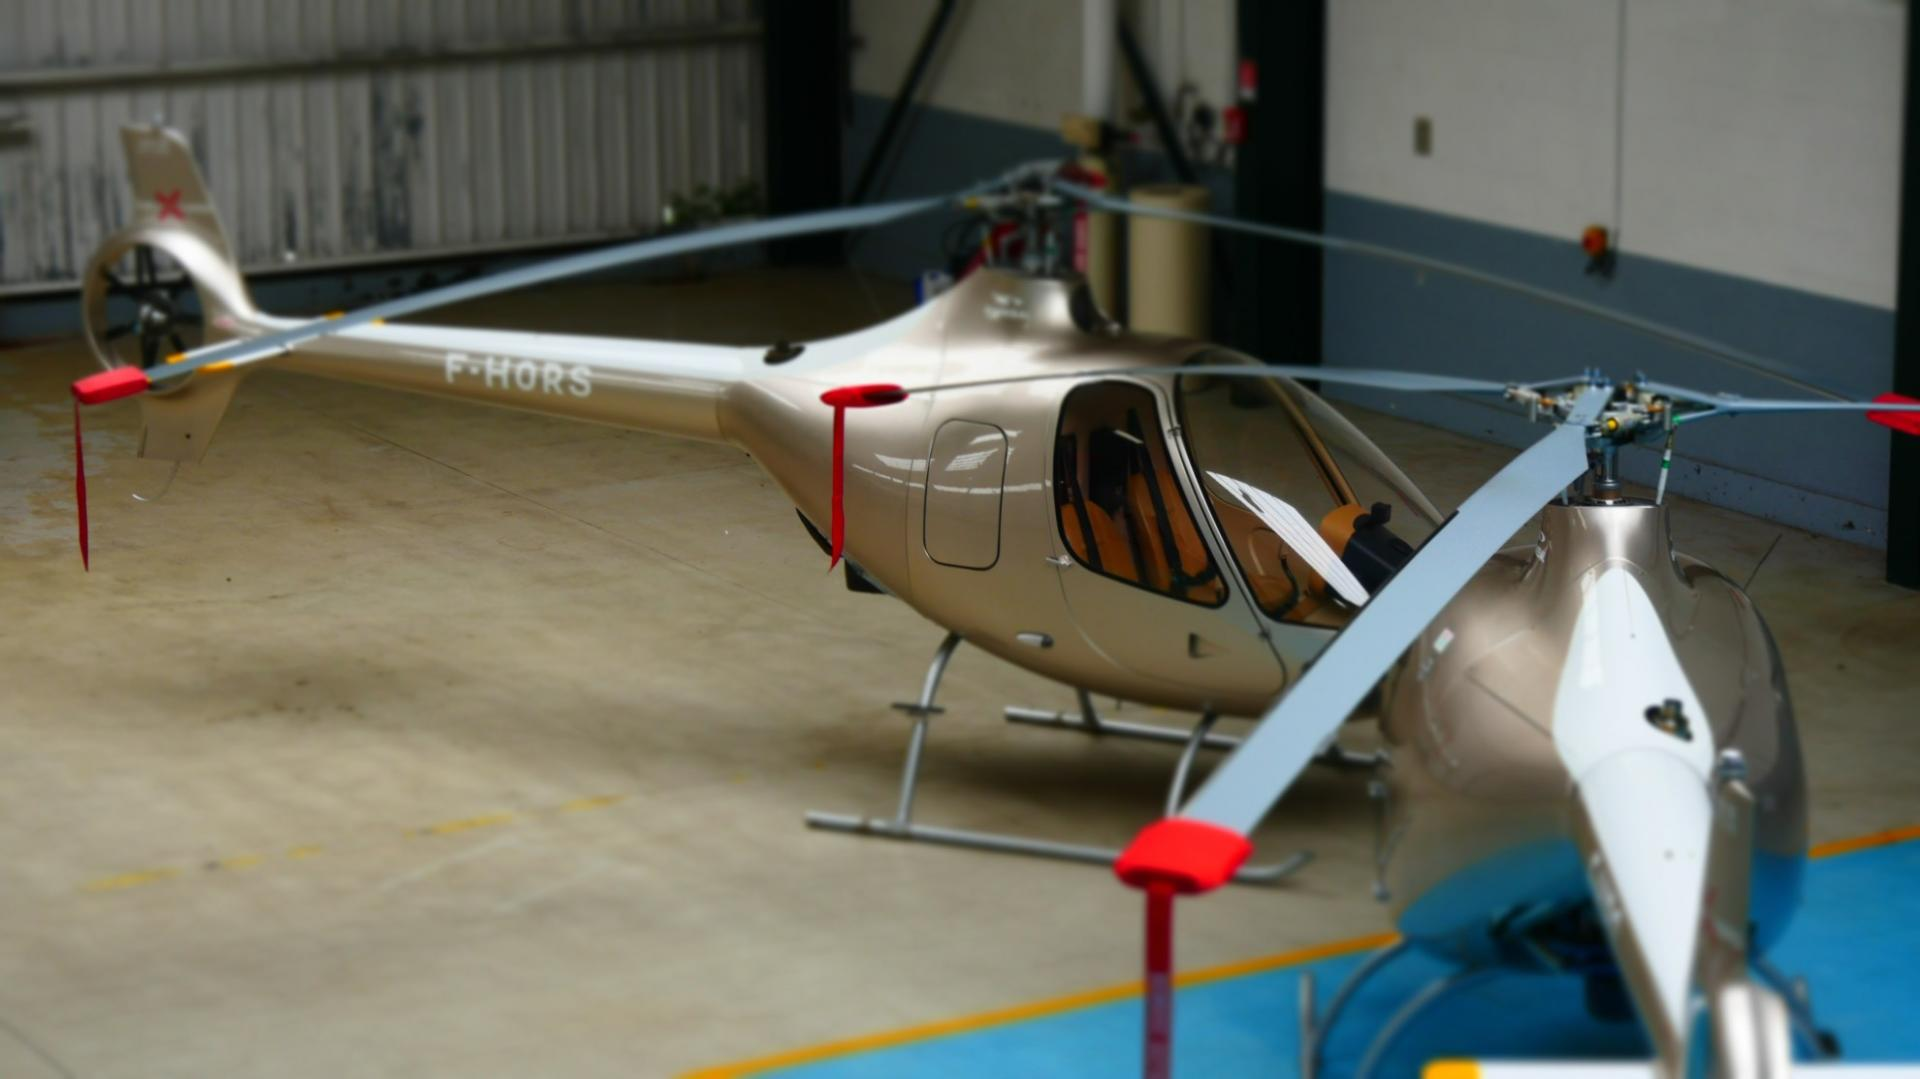 Two guimbal cabri g2